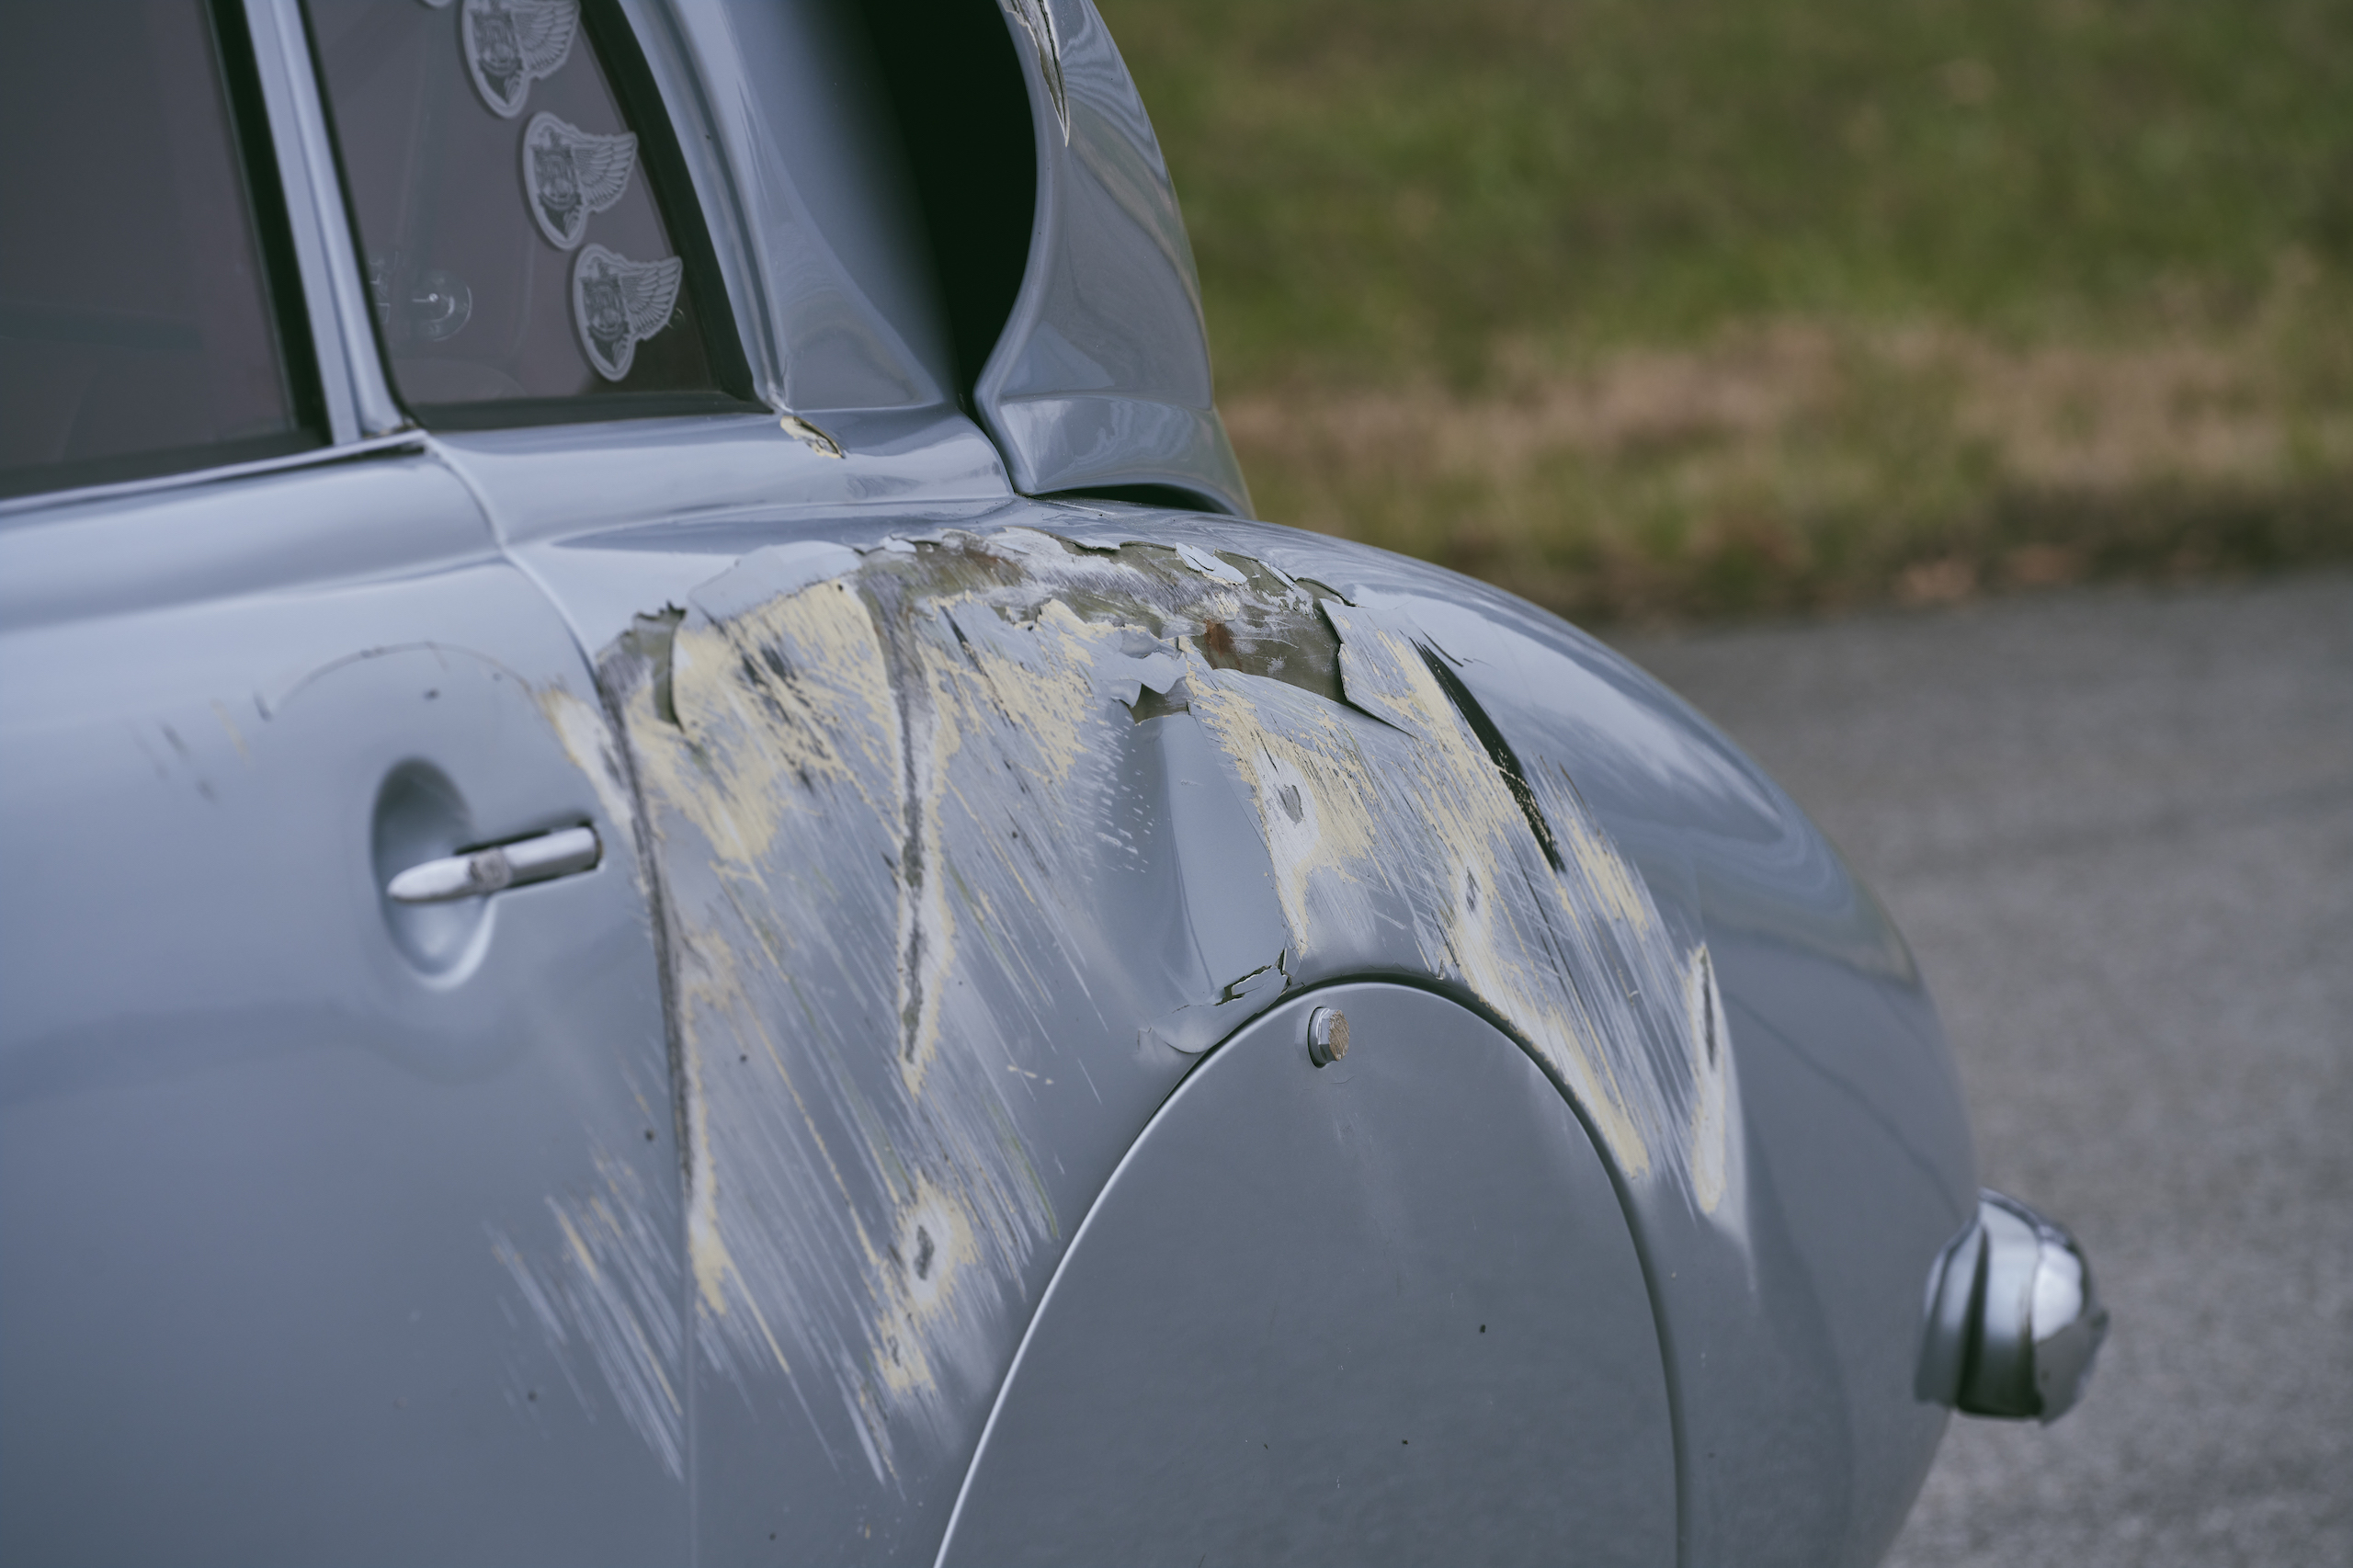 1947 Tatra T87 quarter panel crash damage